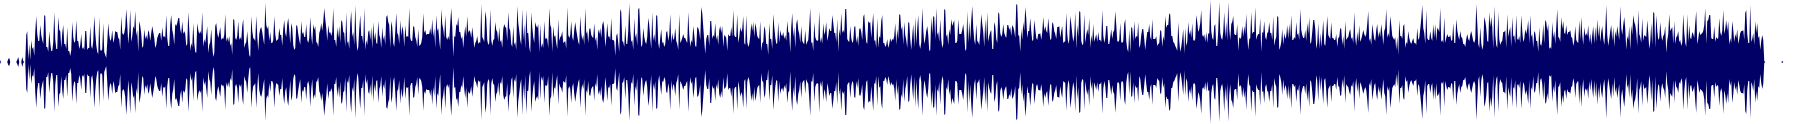 waveform of track #70302